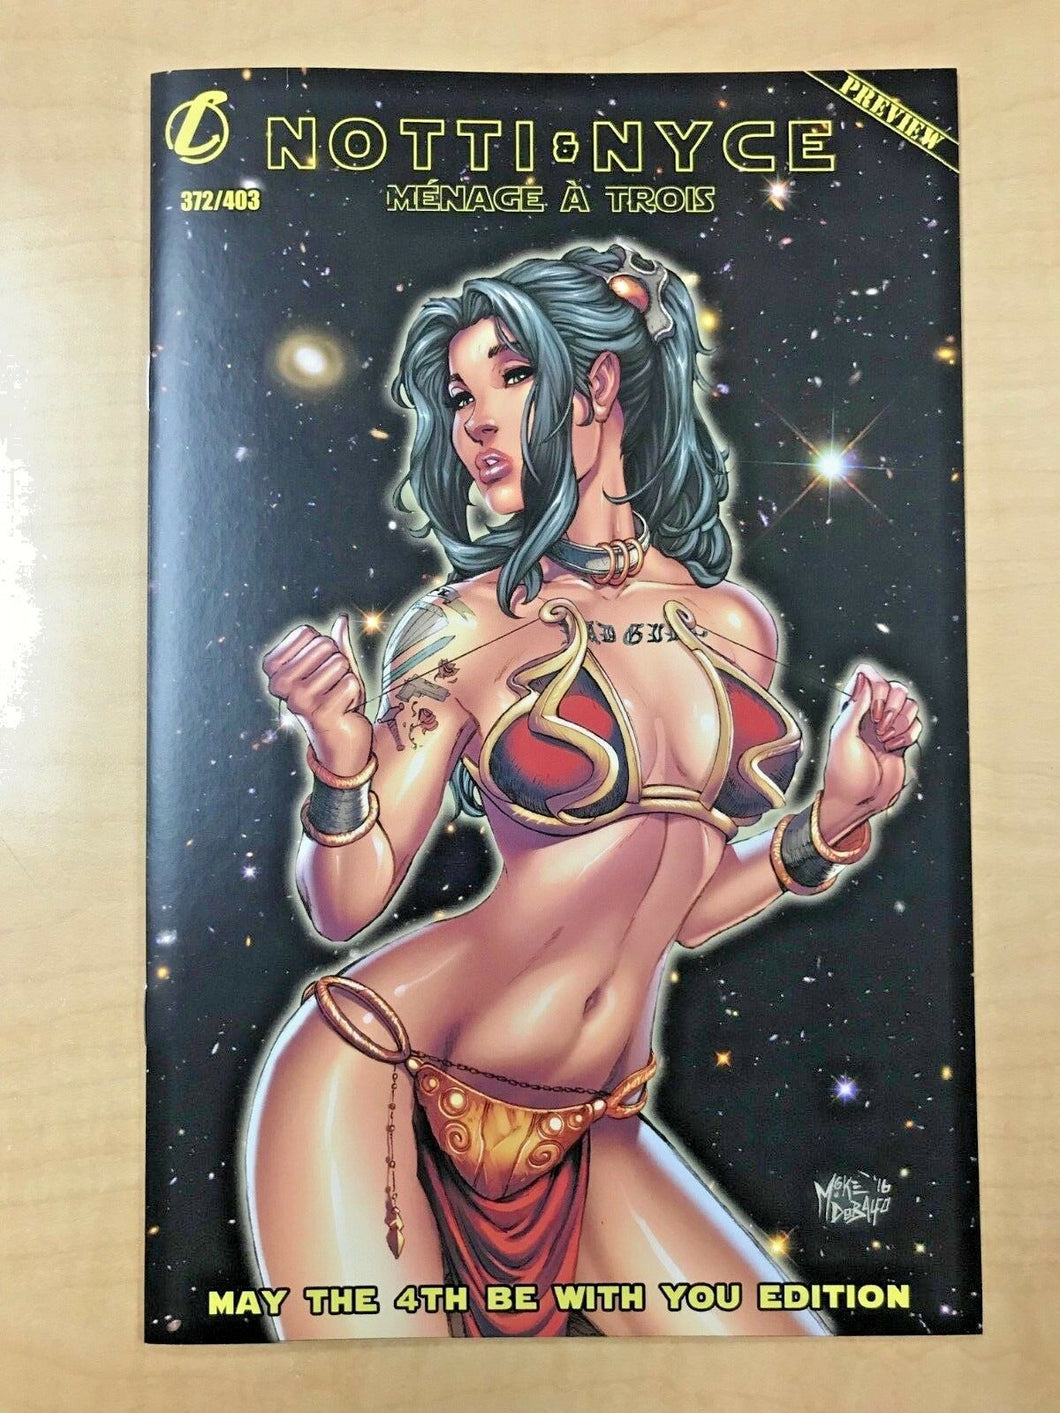 Notti & Nyce Preview May The 4th Be With You Slave Leia Variant by Mike Debalfo